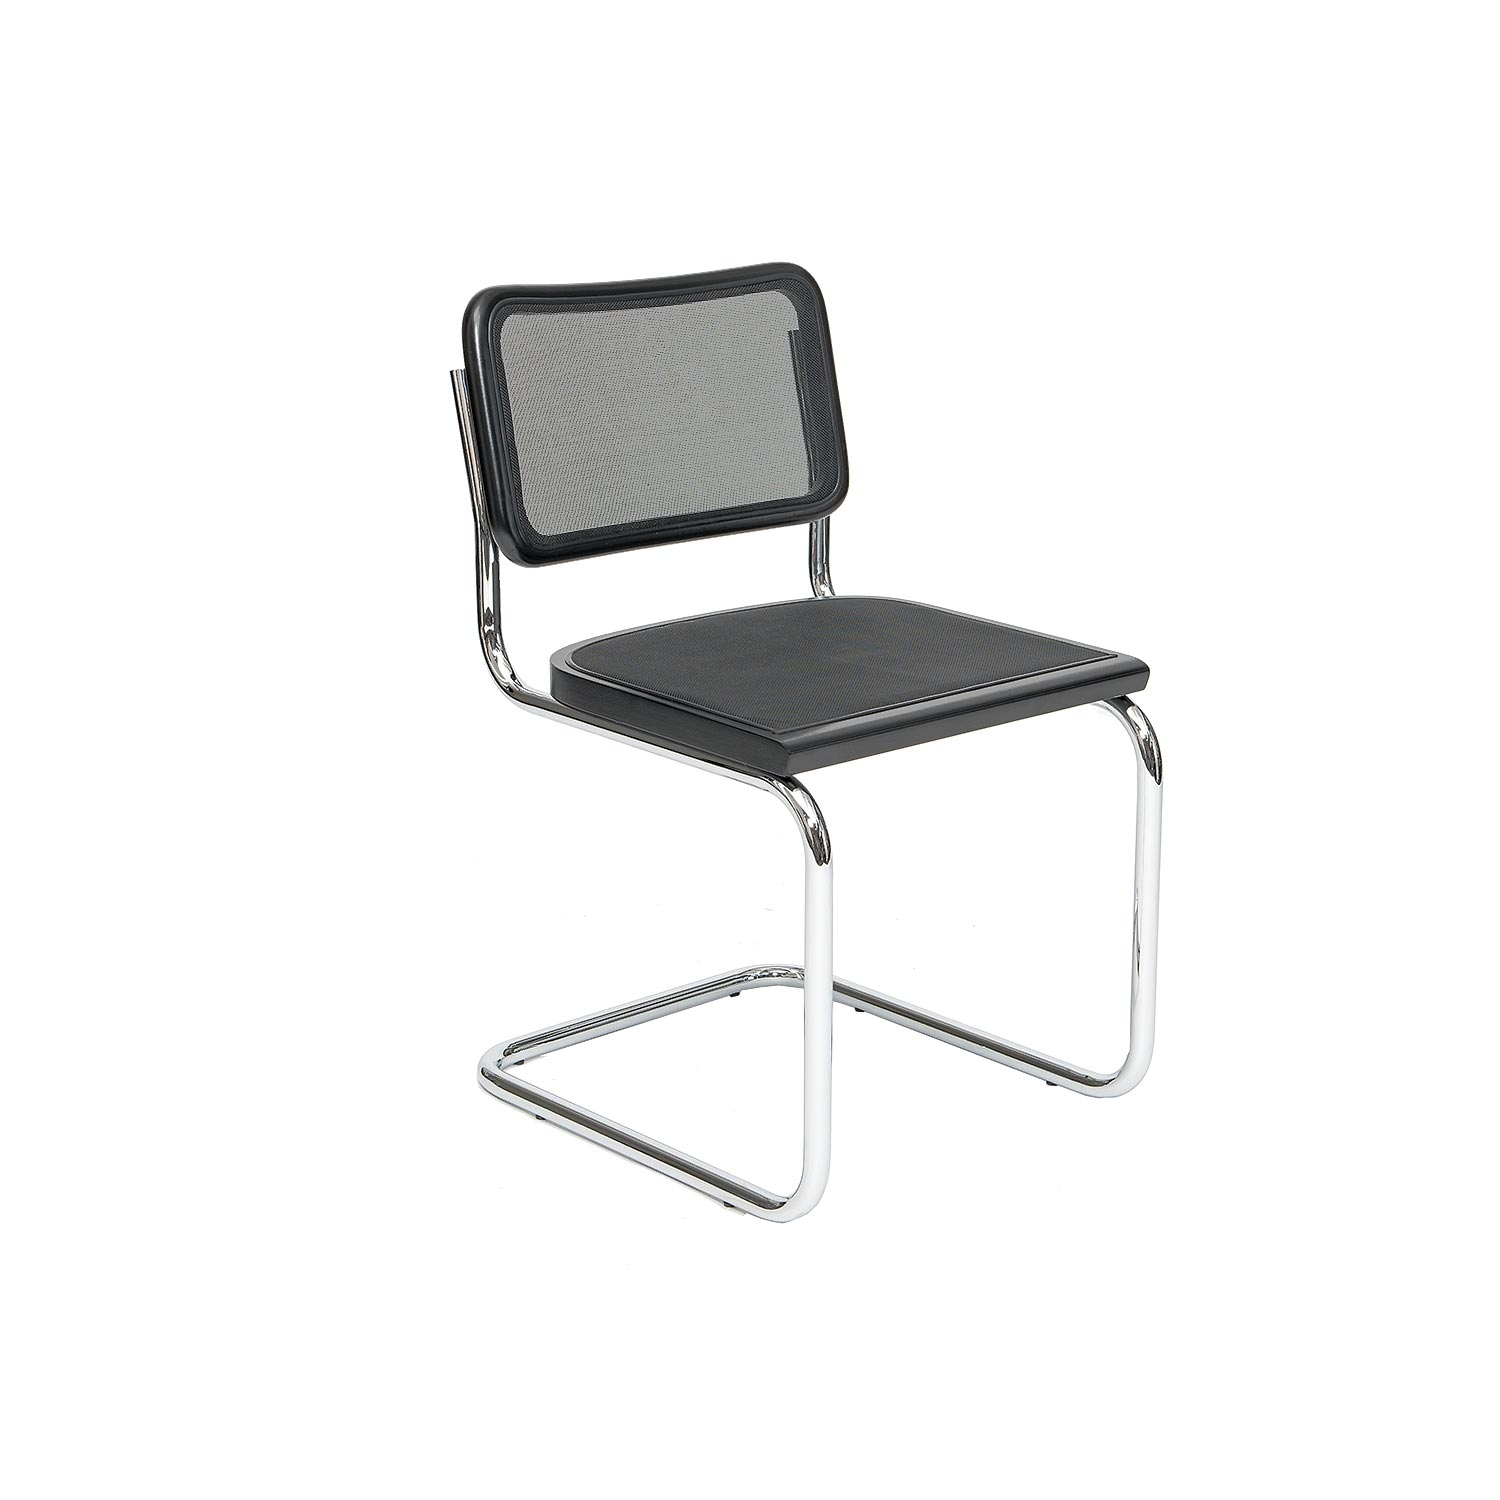 marcel breuer cesca chair with armrests wheelchair cushion types b 32 designed by steelform